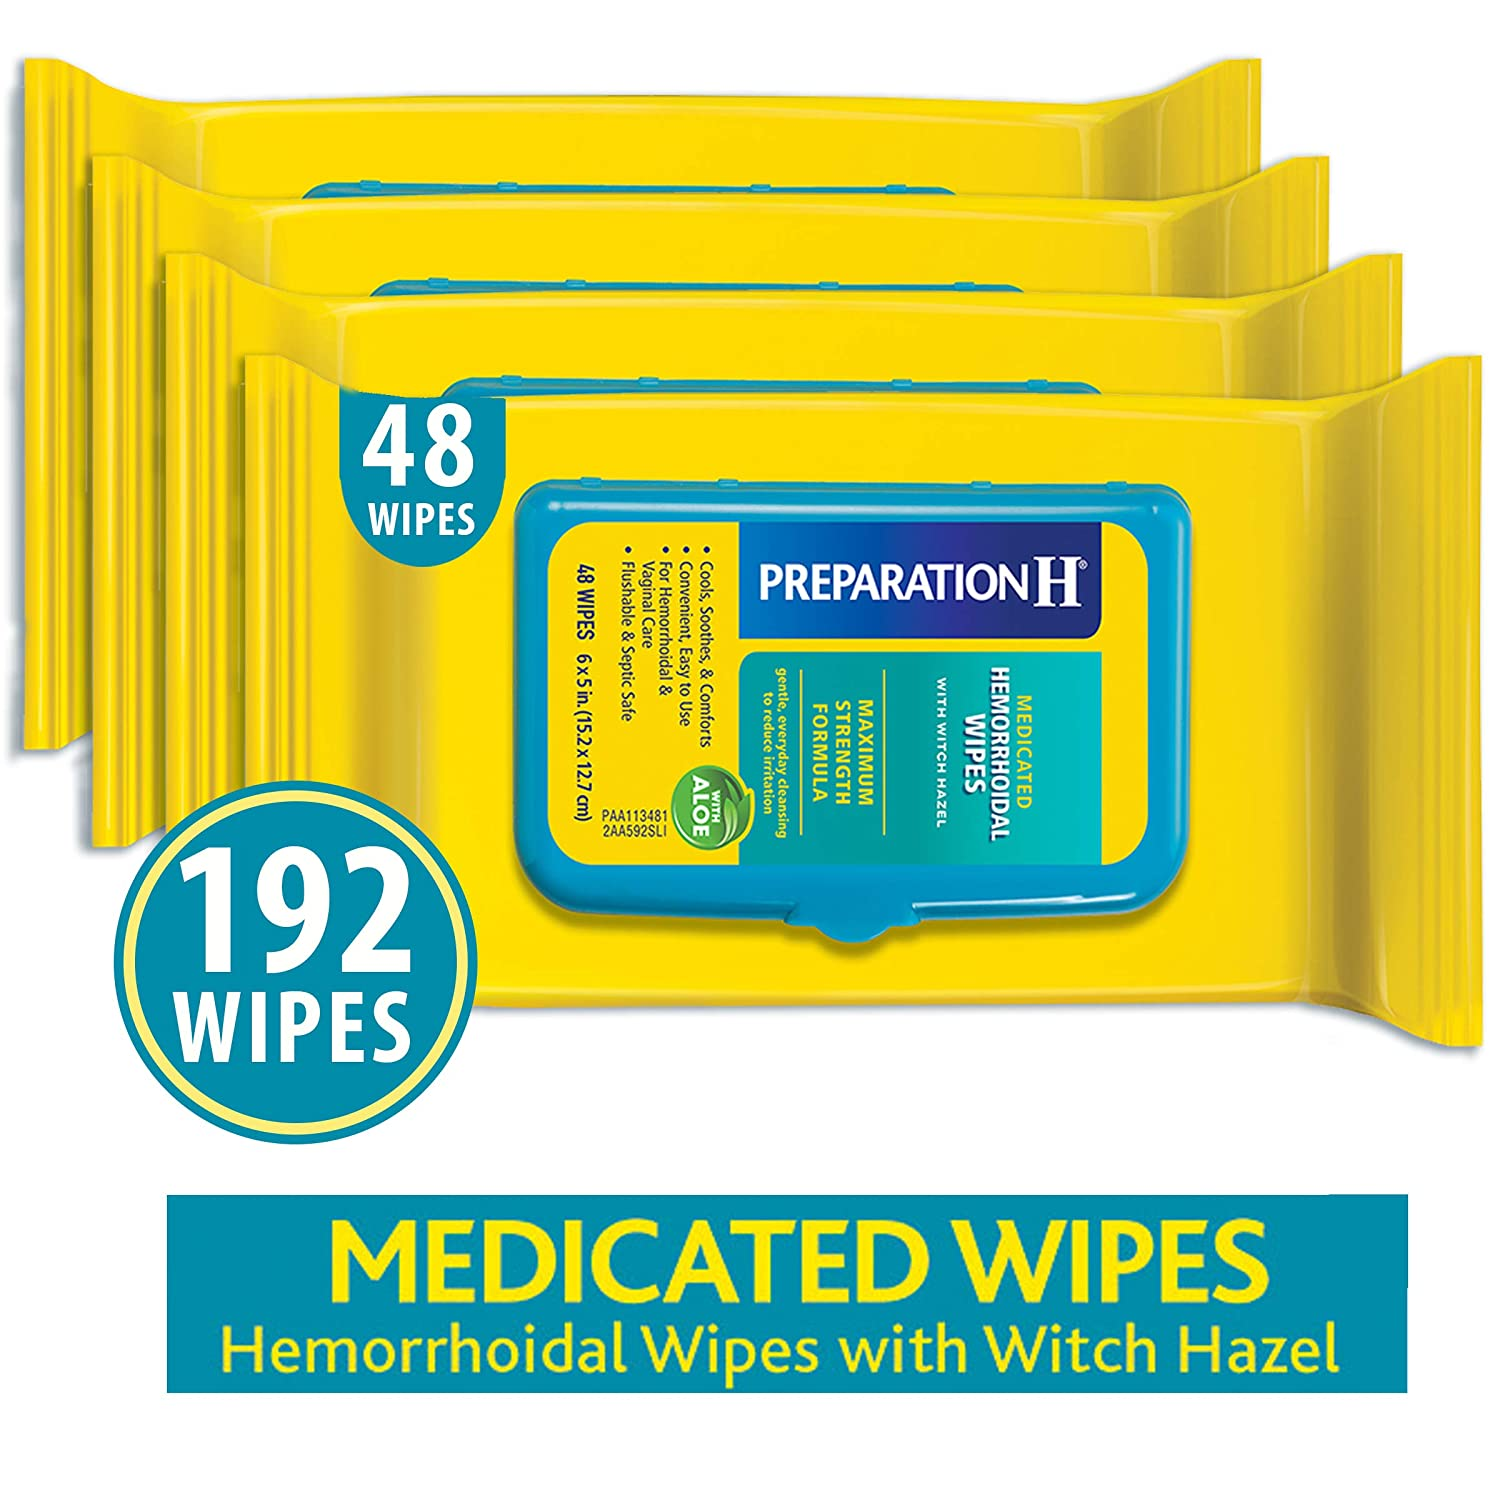 Preparation H Flushable Medicated Hemorrhoid Wipes, Maximum Strength Relief with Witch Hazel and Aloe, Pouch (4 x 48 Count, 192 Count)